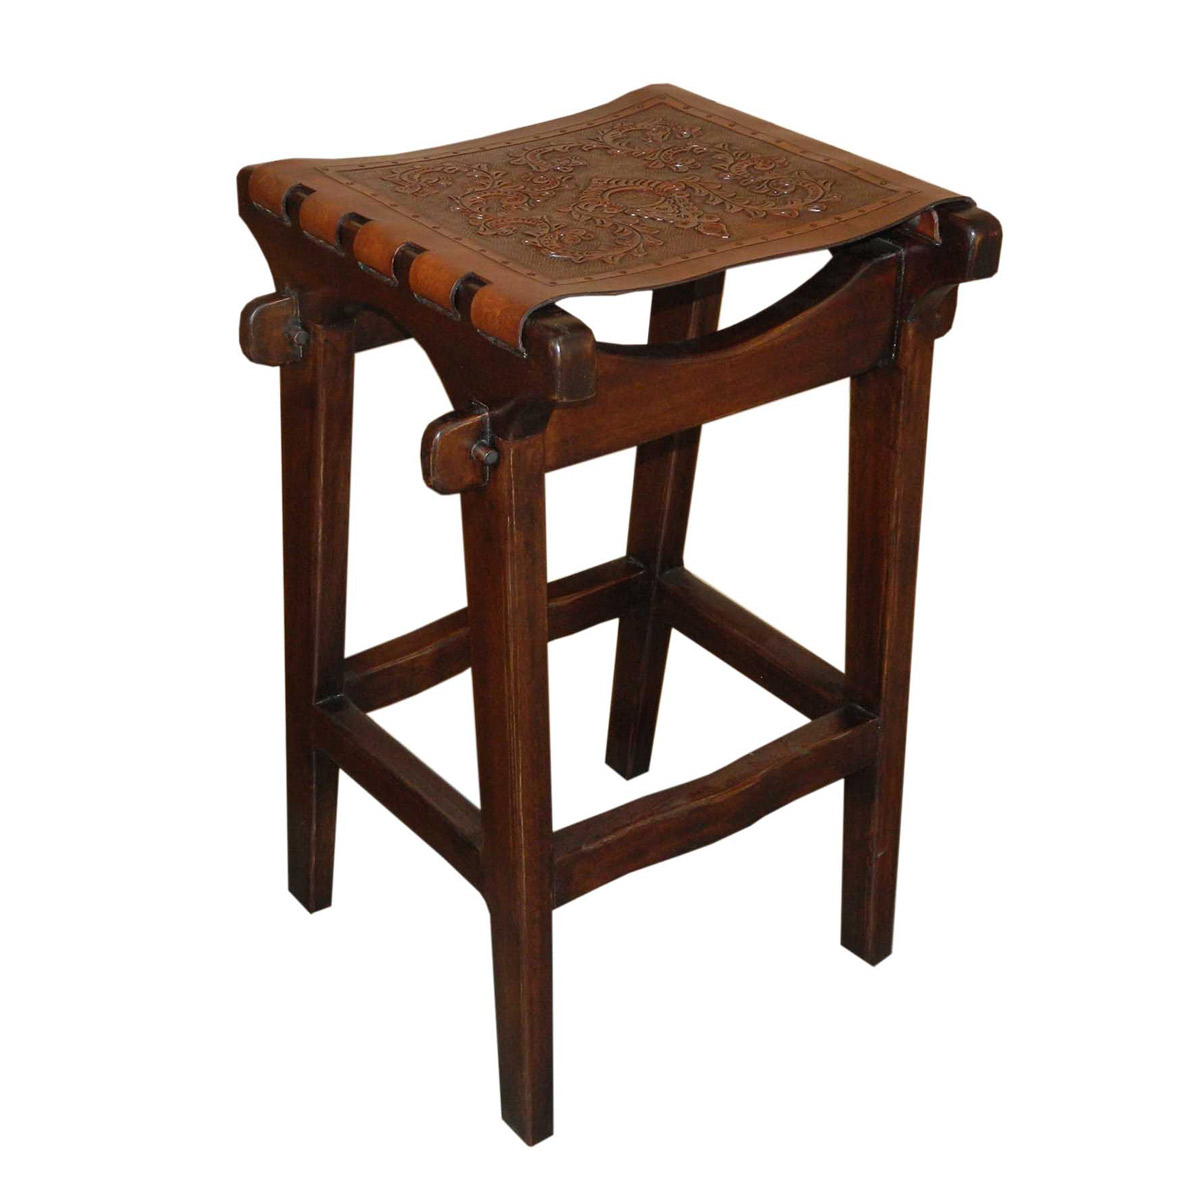 Santa Fe Counter Stool with Colonial Tooled Leather Seat